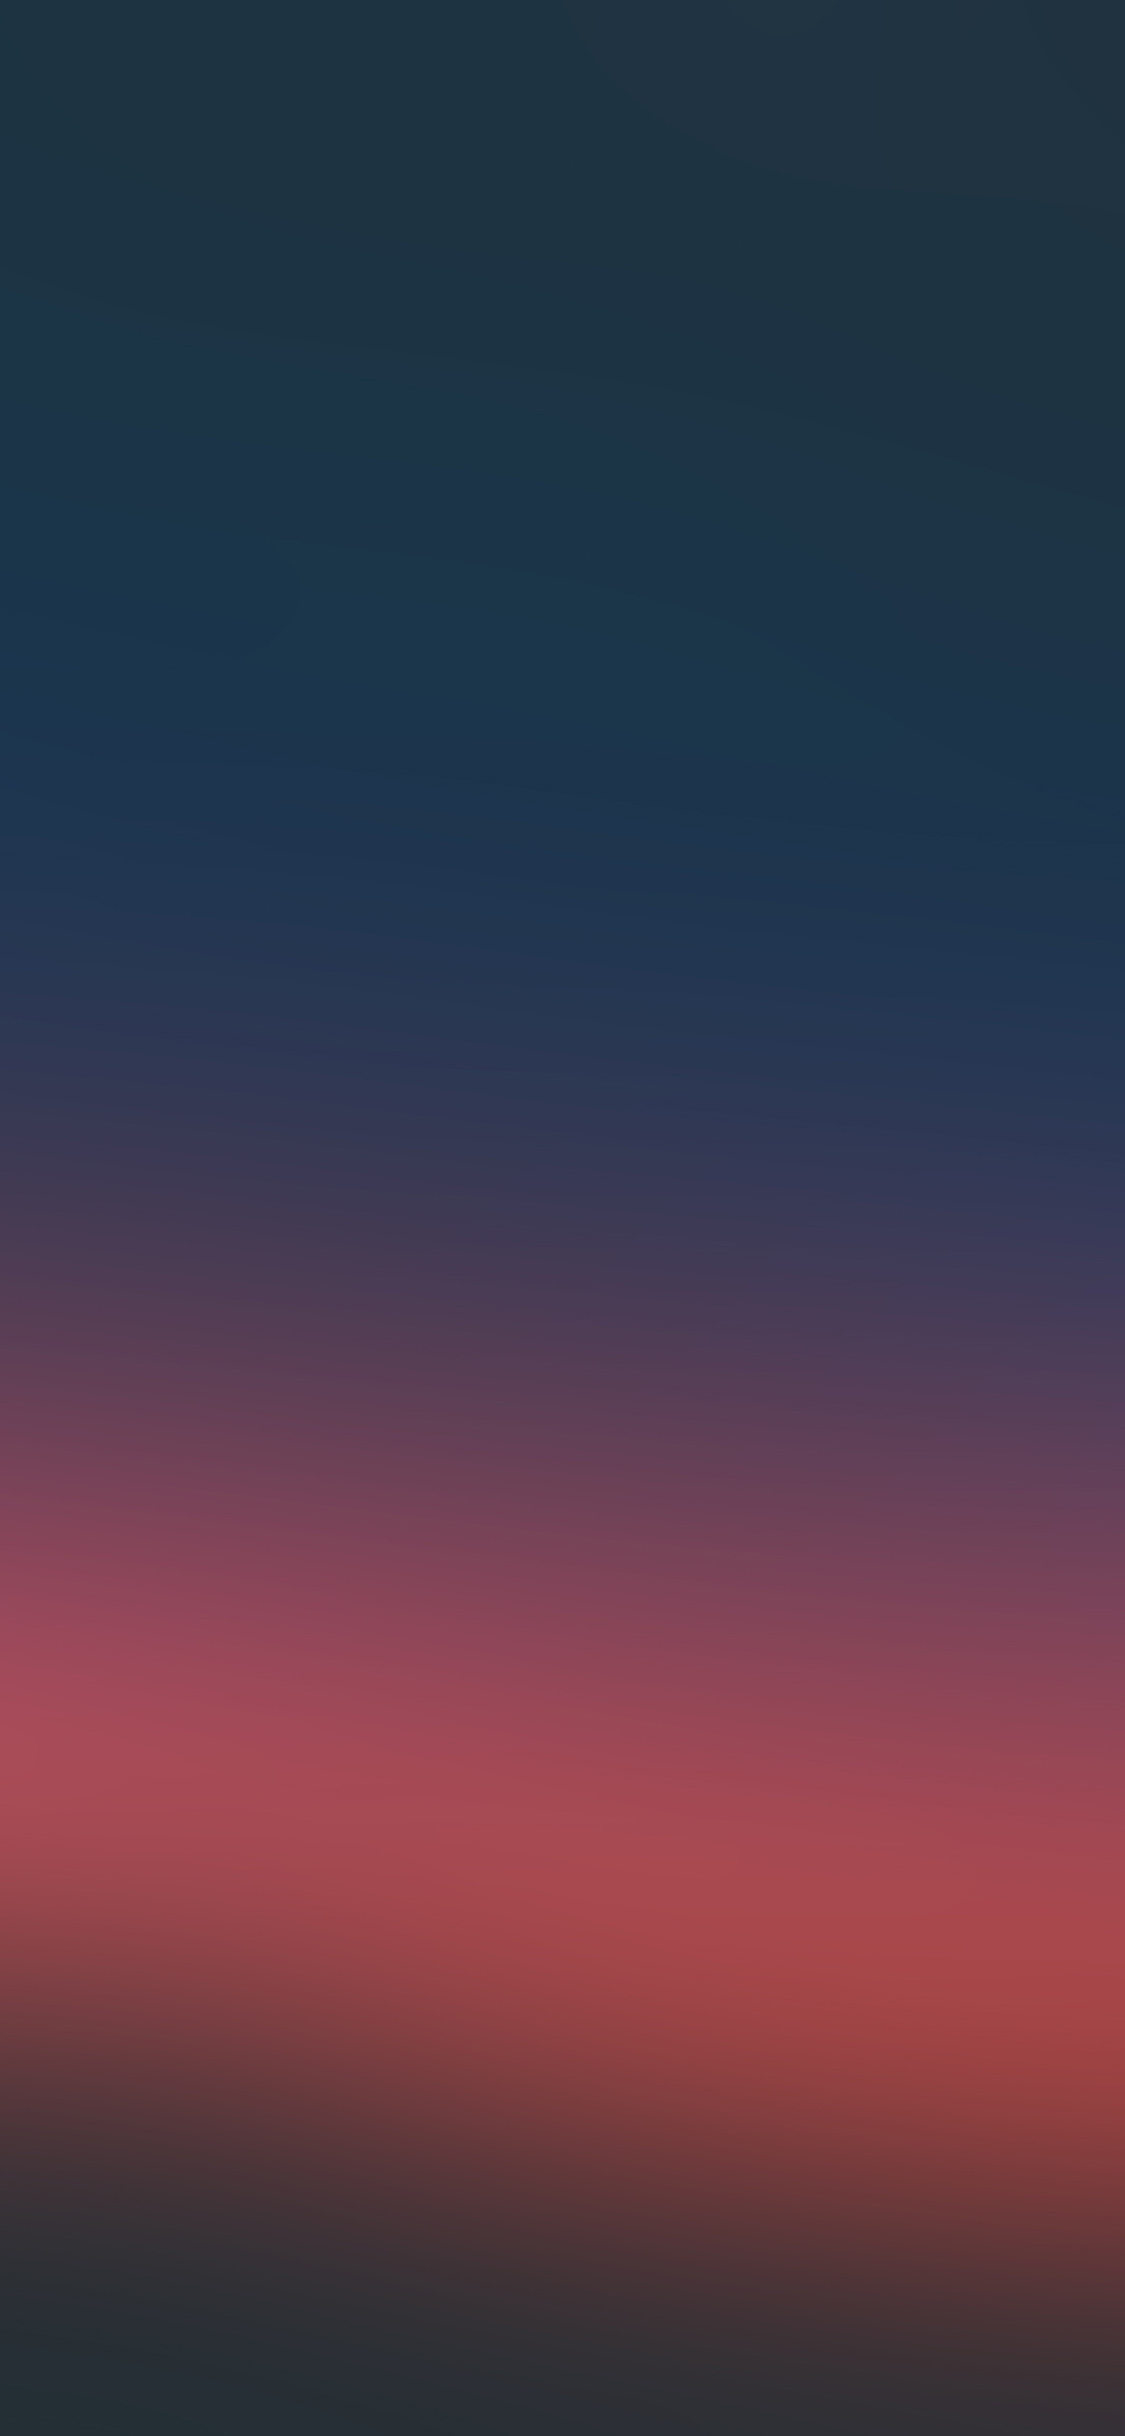 iPhoneXpapers.com-Apple-iPhone-wallpaper-sl37-sunset-blue-pink-blur-gradation